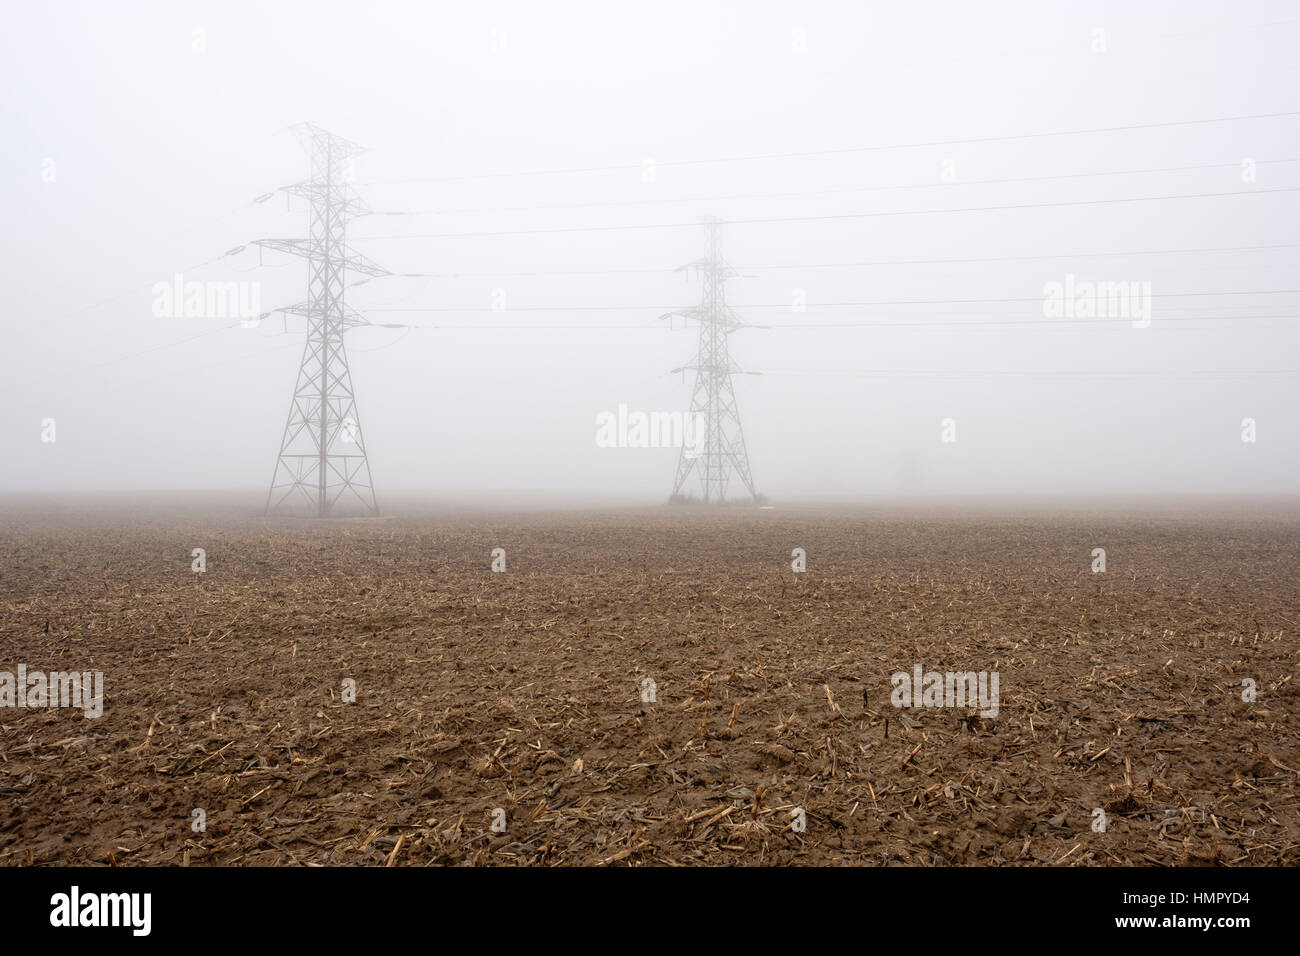 Two power line towers / pylons in a farm field under heavy fog in Southwest Ontario, Canada. - Stock Image